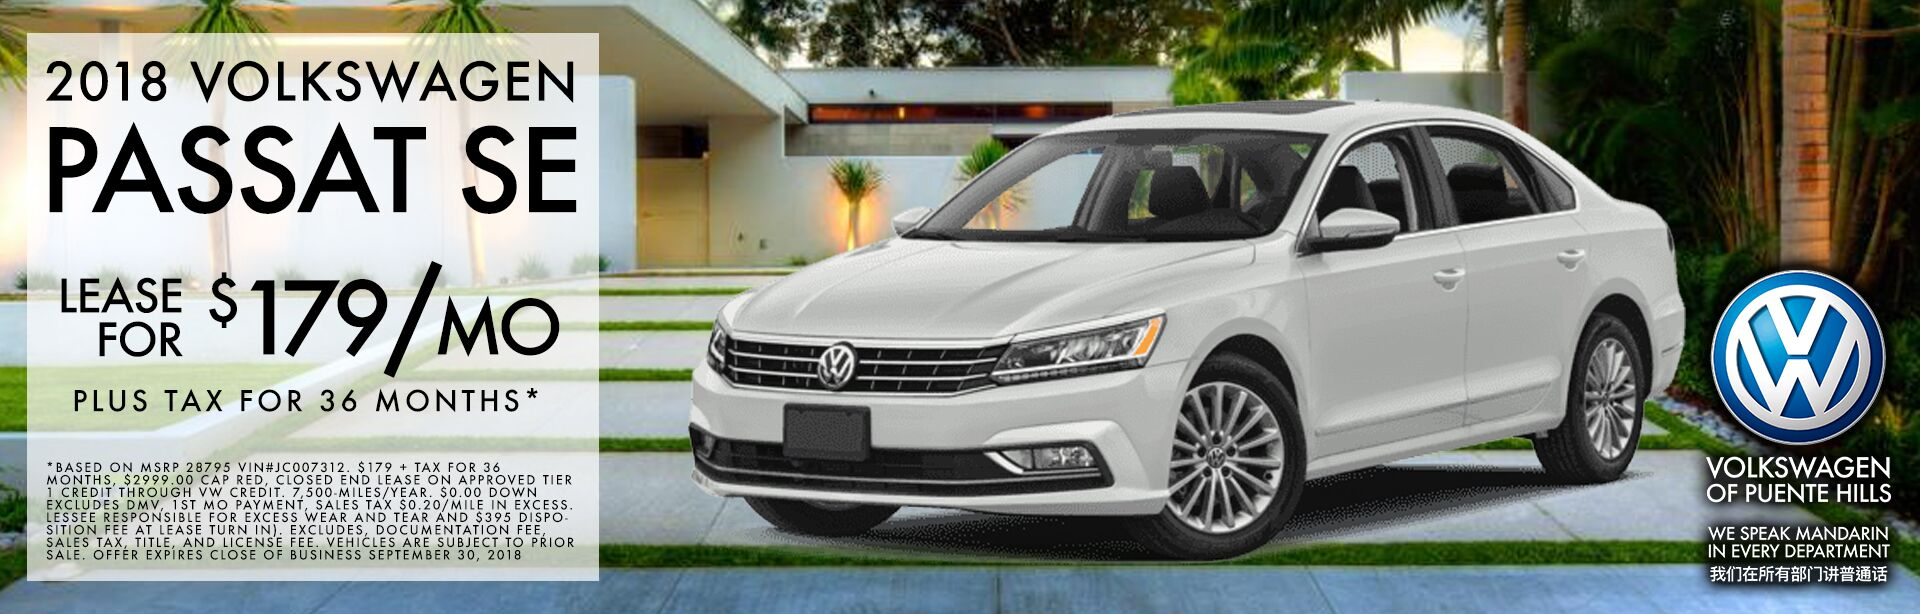 Lease a passat se for 179 a month plus tax